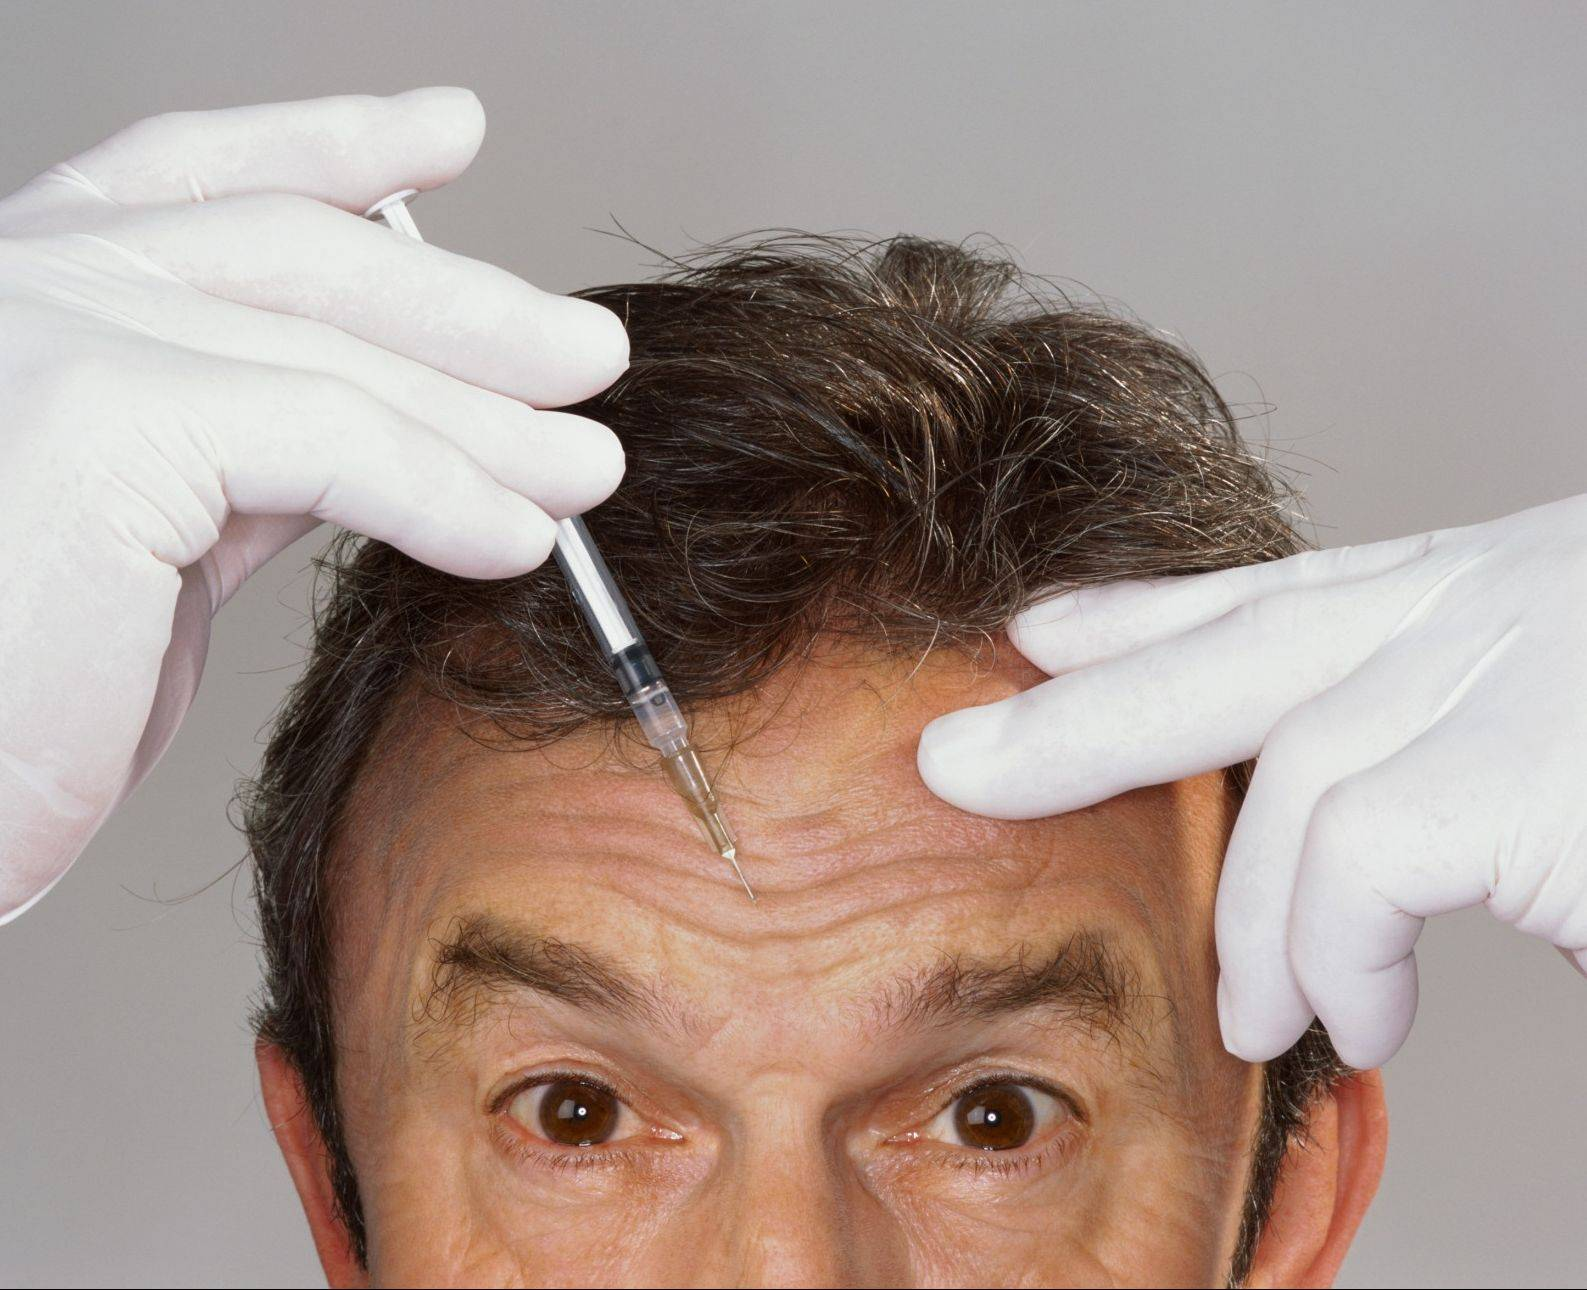 The number of men getting Botox injections and cosmetic surgery is increasing, experts say.